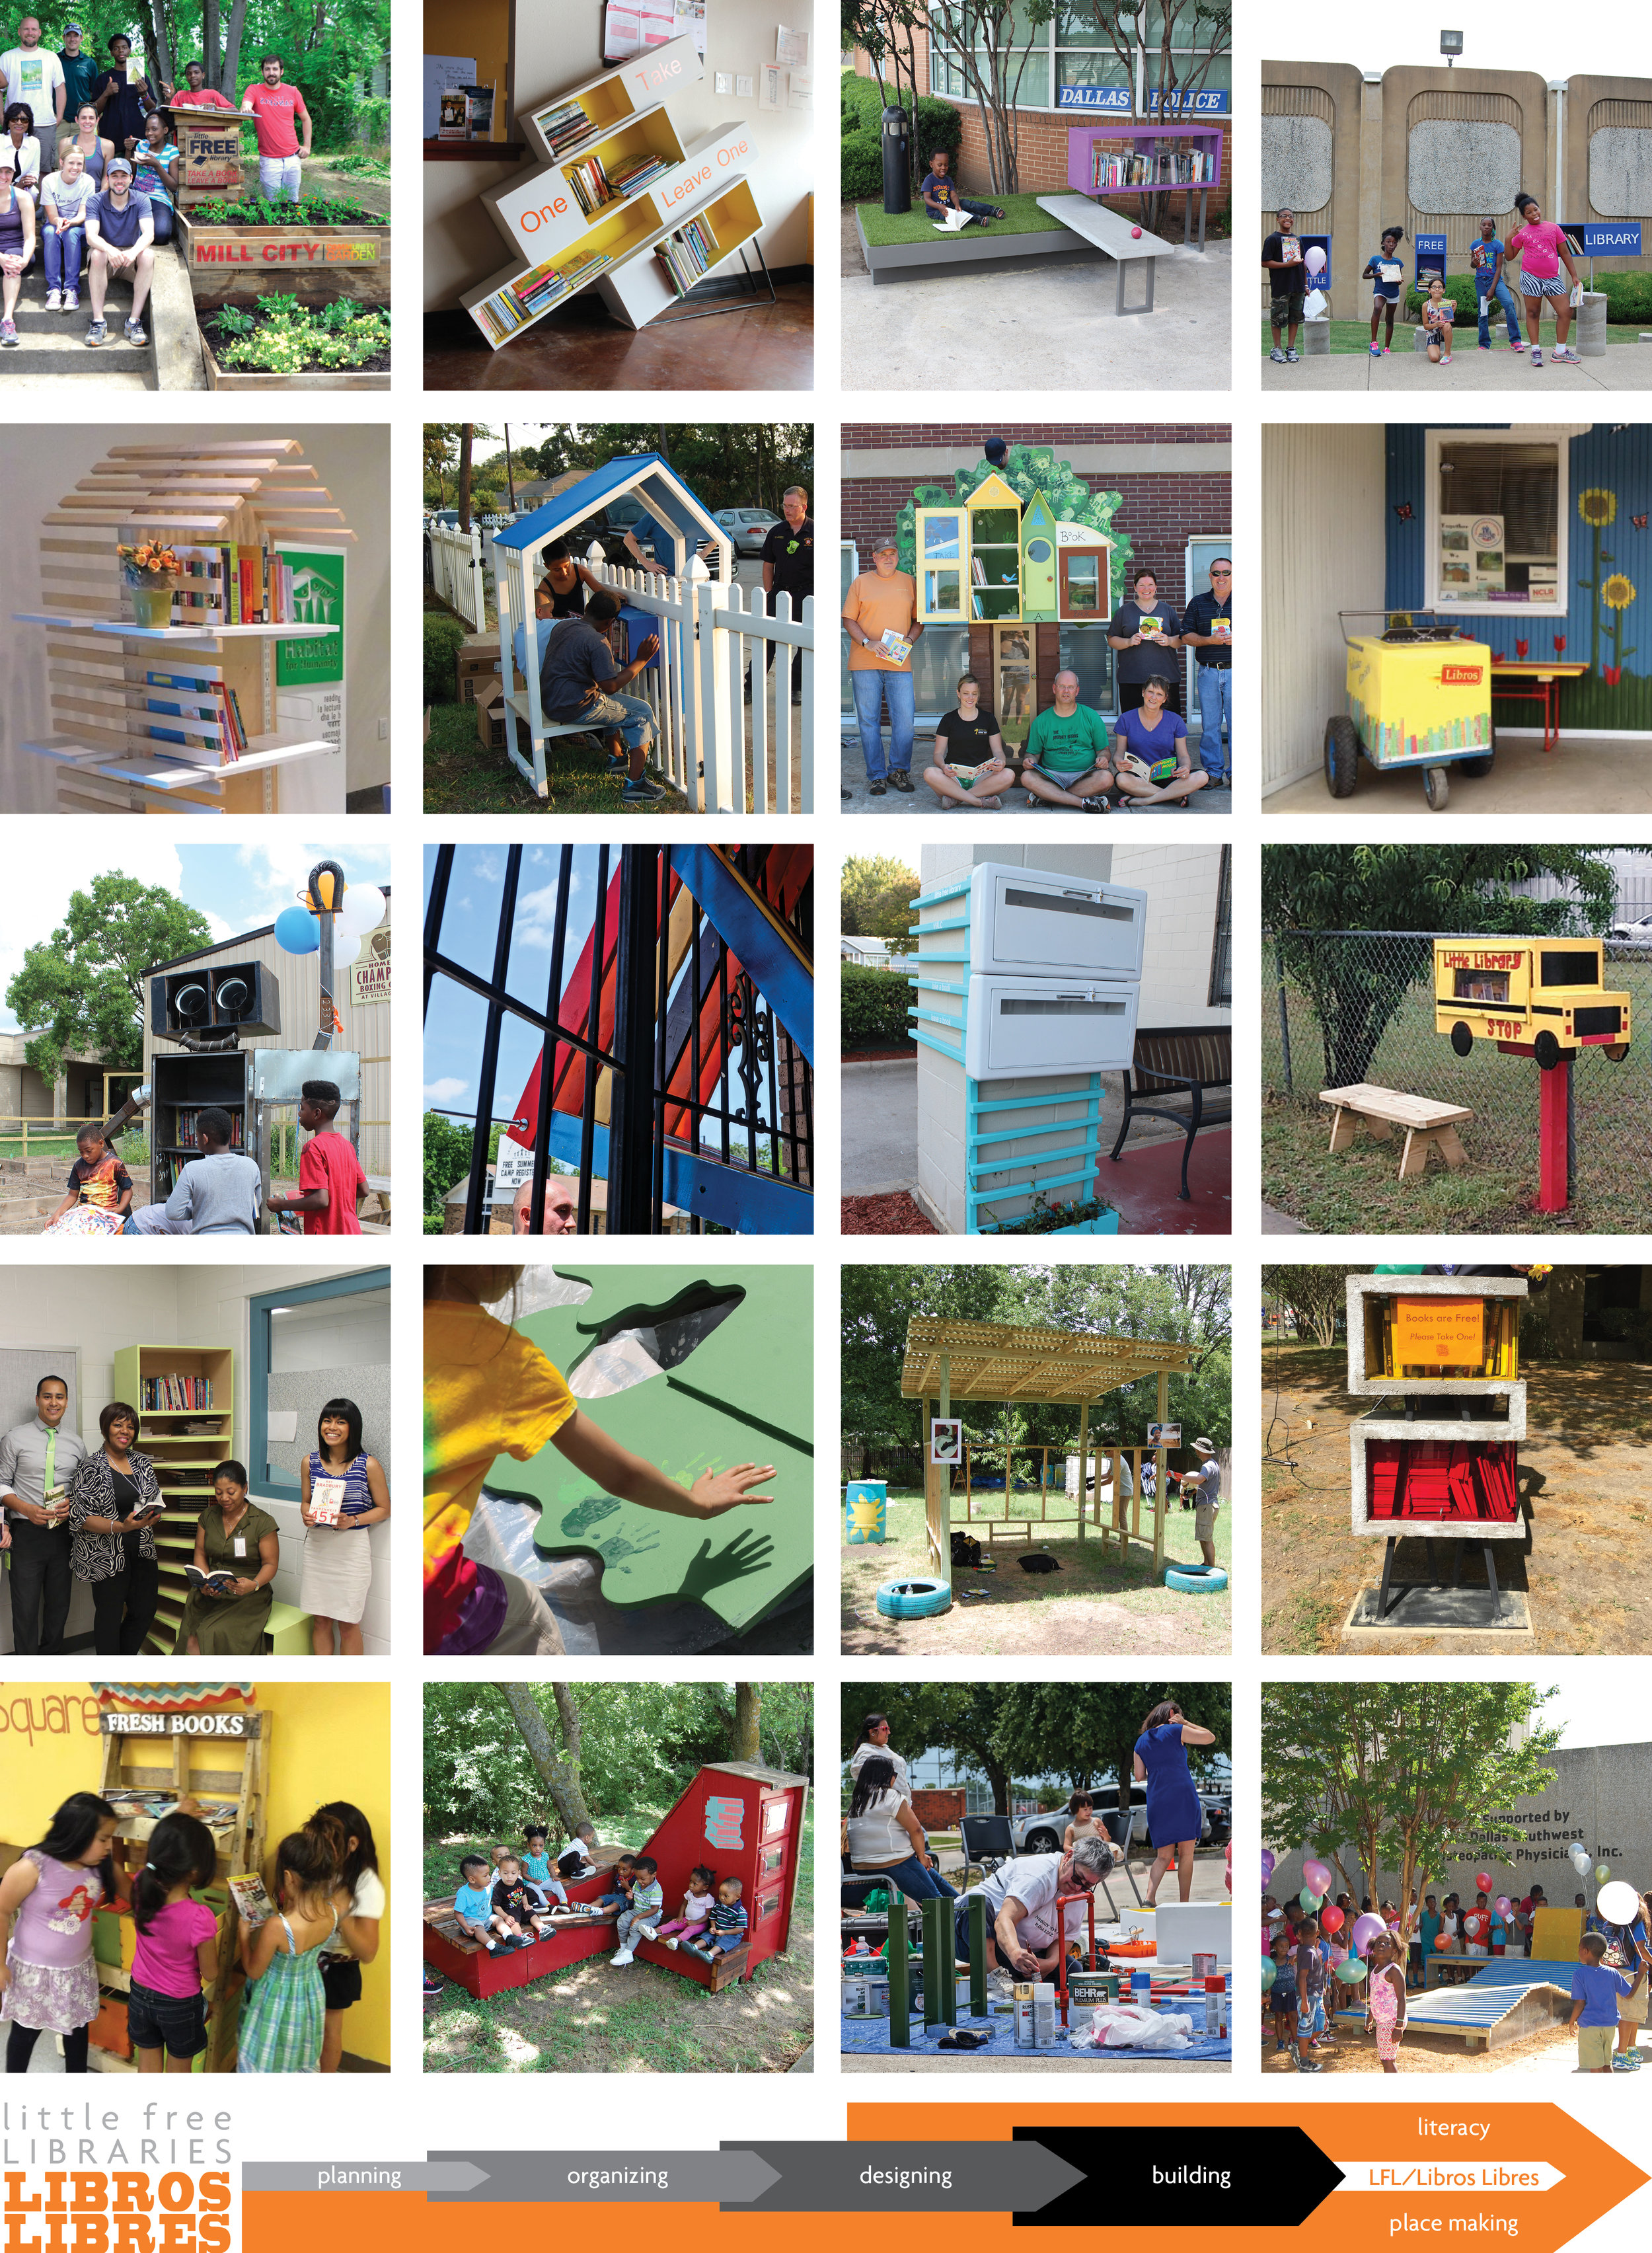 Images of all 20 Little Free Libraries designed under the Little Free Library/ Libros Libres program since 2014